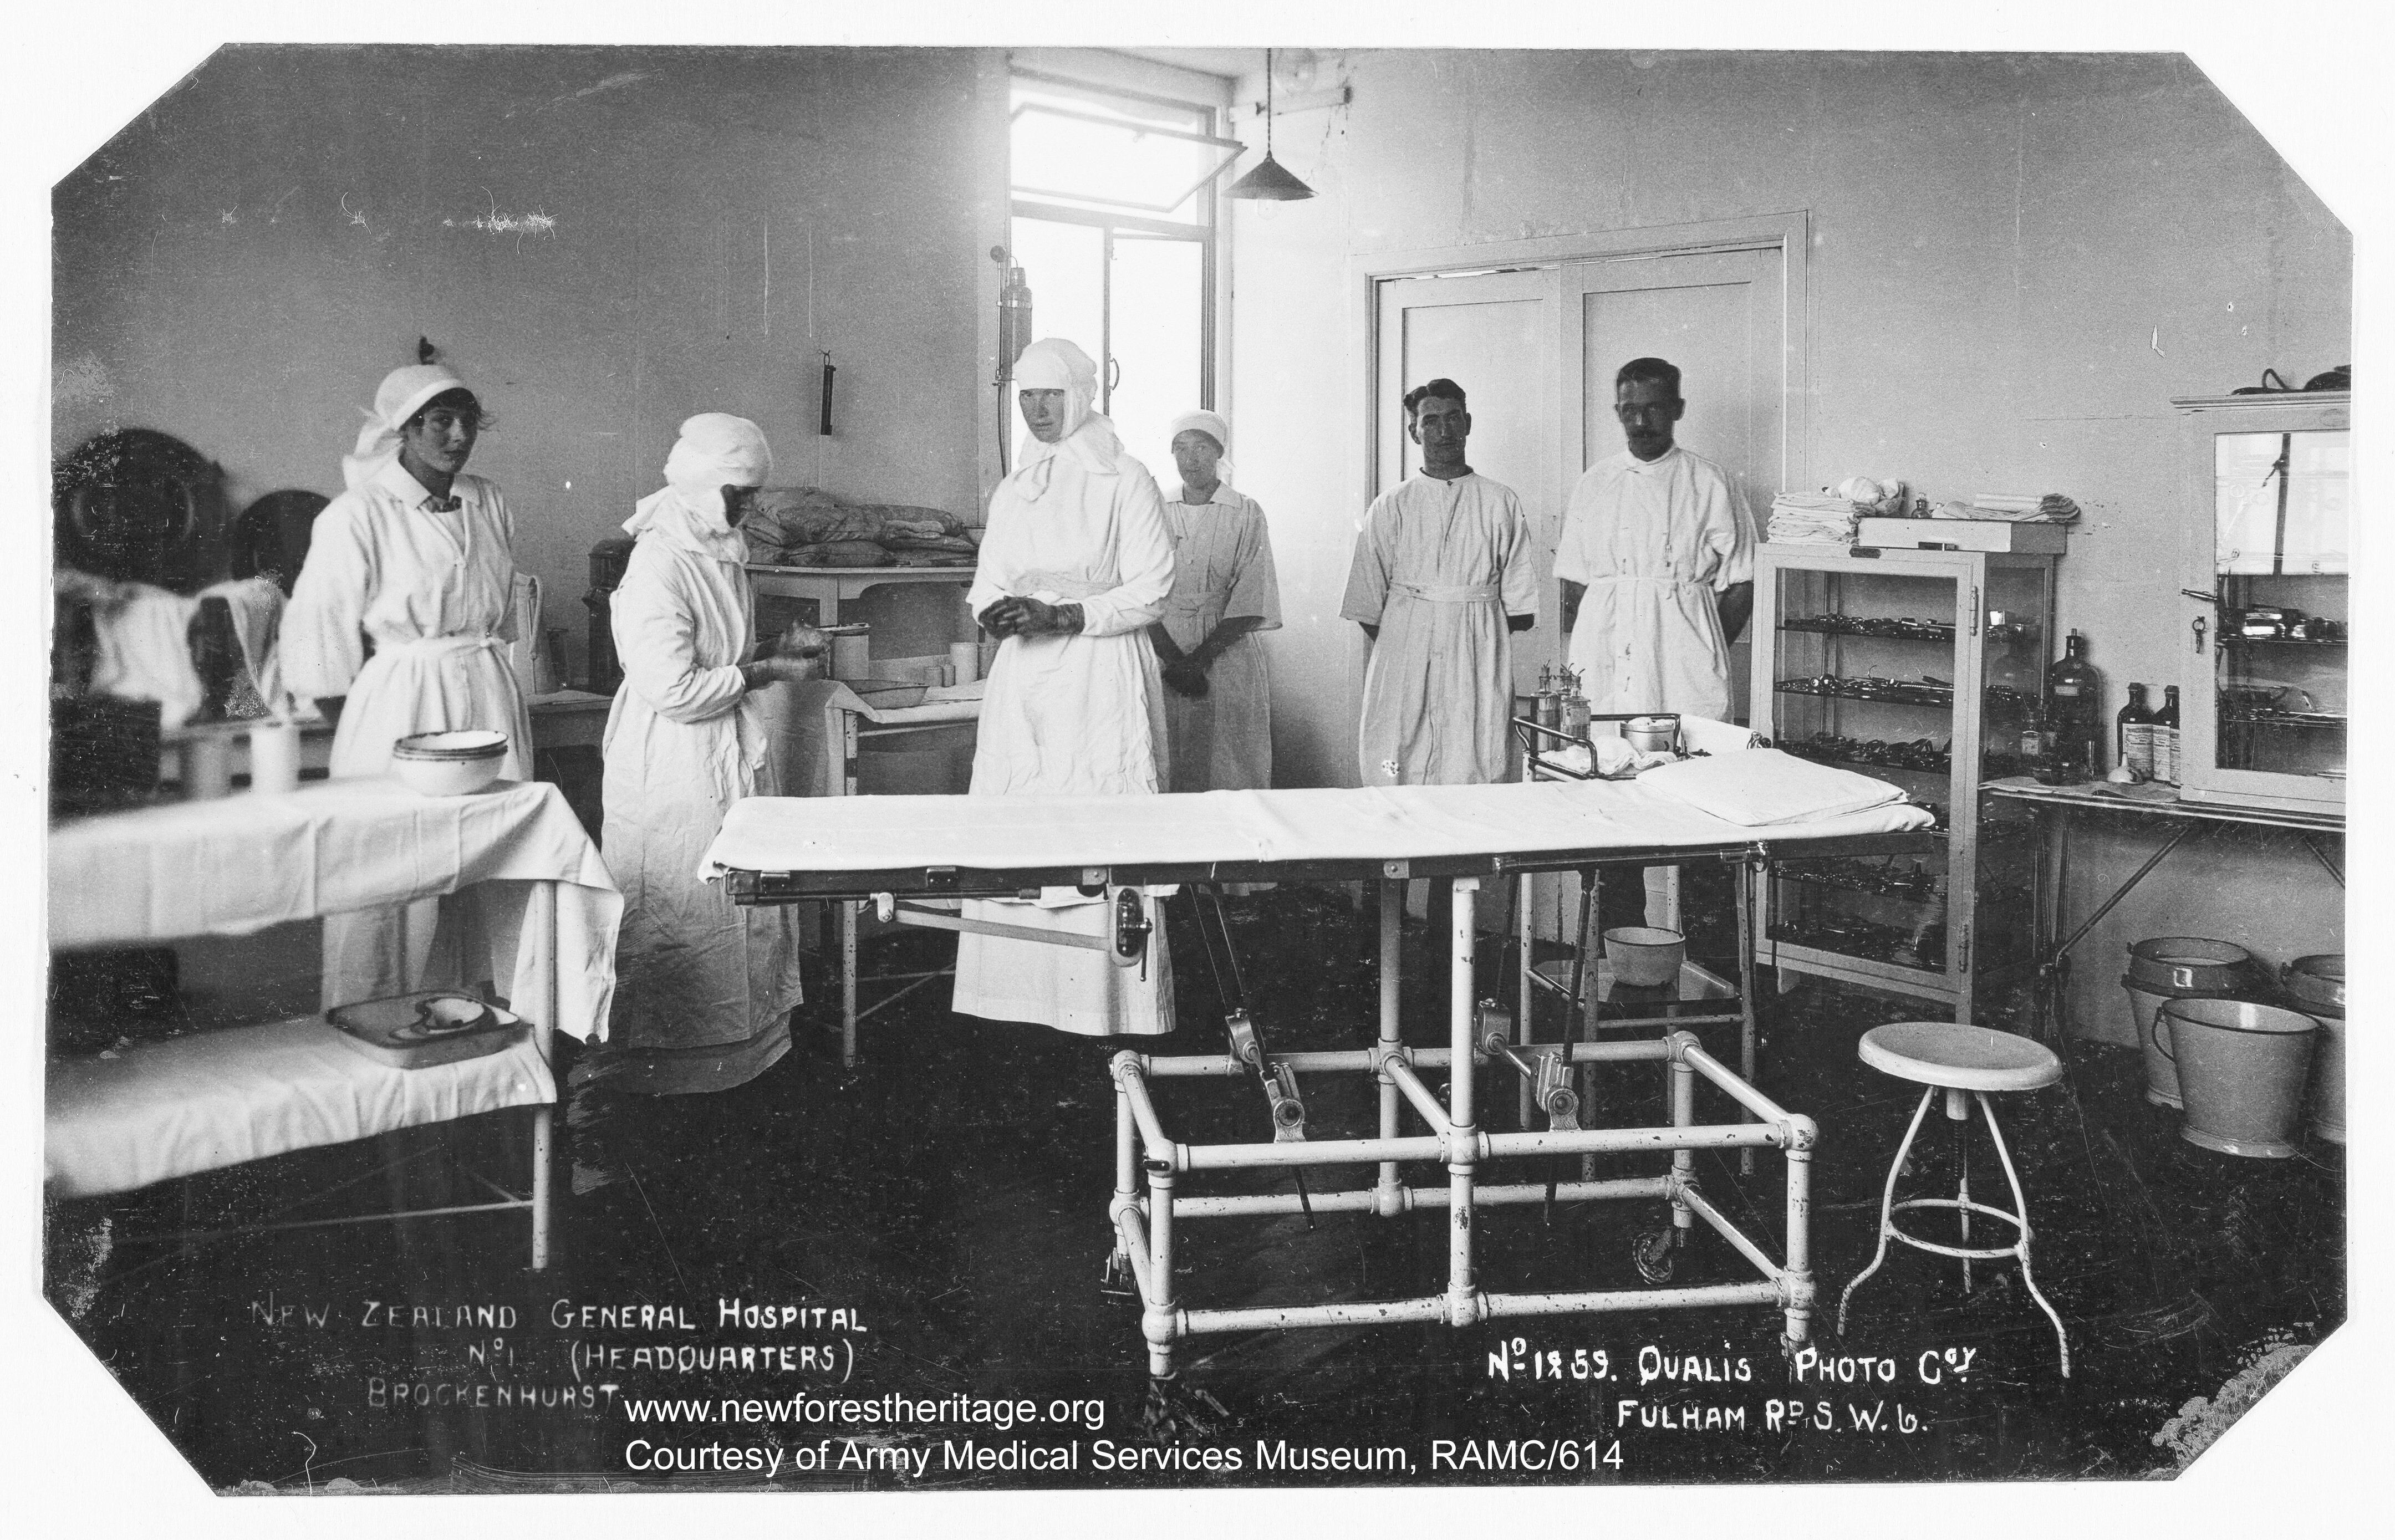 Medical staff in Operating theatre, No.1 New Zealand General Hospital. 1918